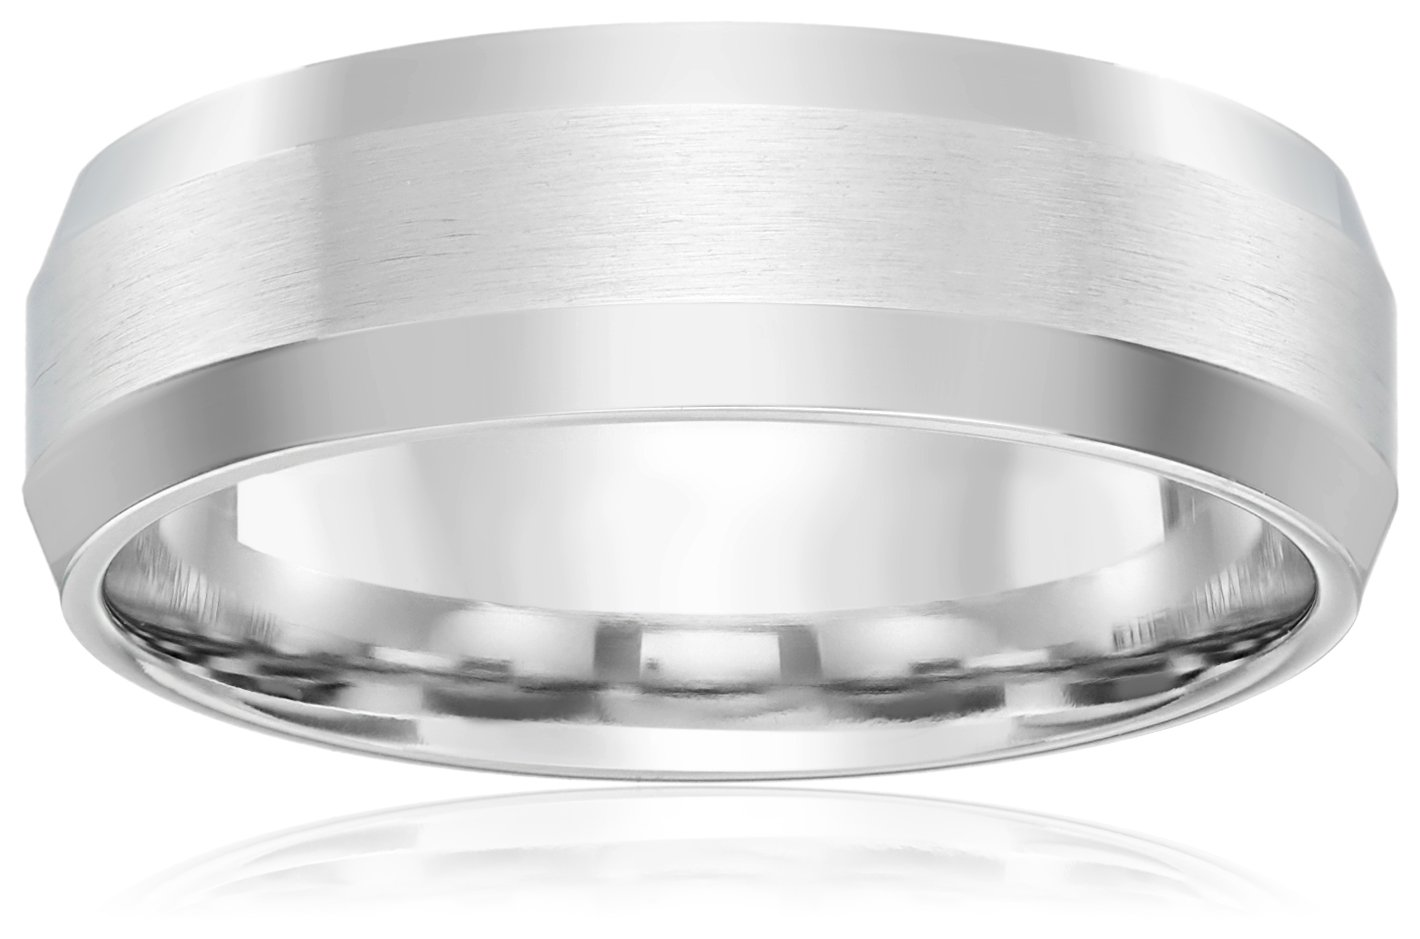 10k White Gold 6mm Comfort-Fit Wedding Band with Satin Center and High-Polish Beveled Edges, Size 8.5